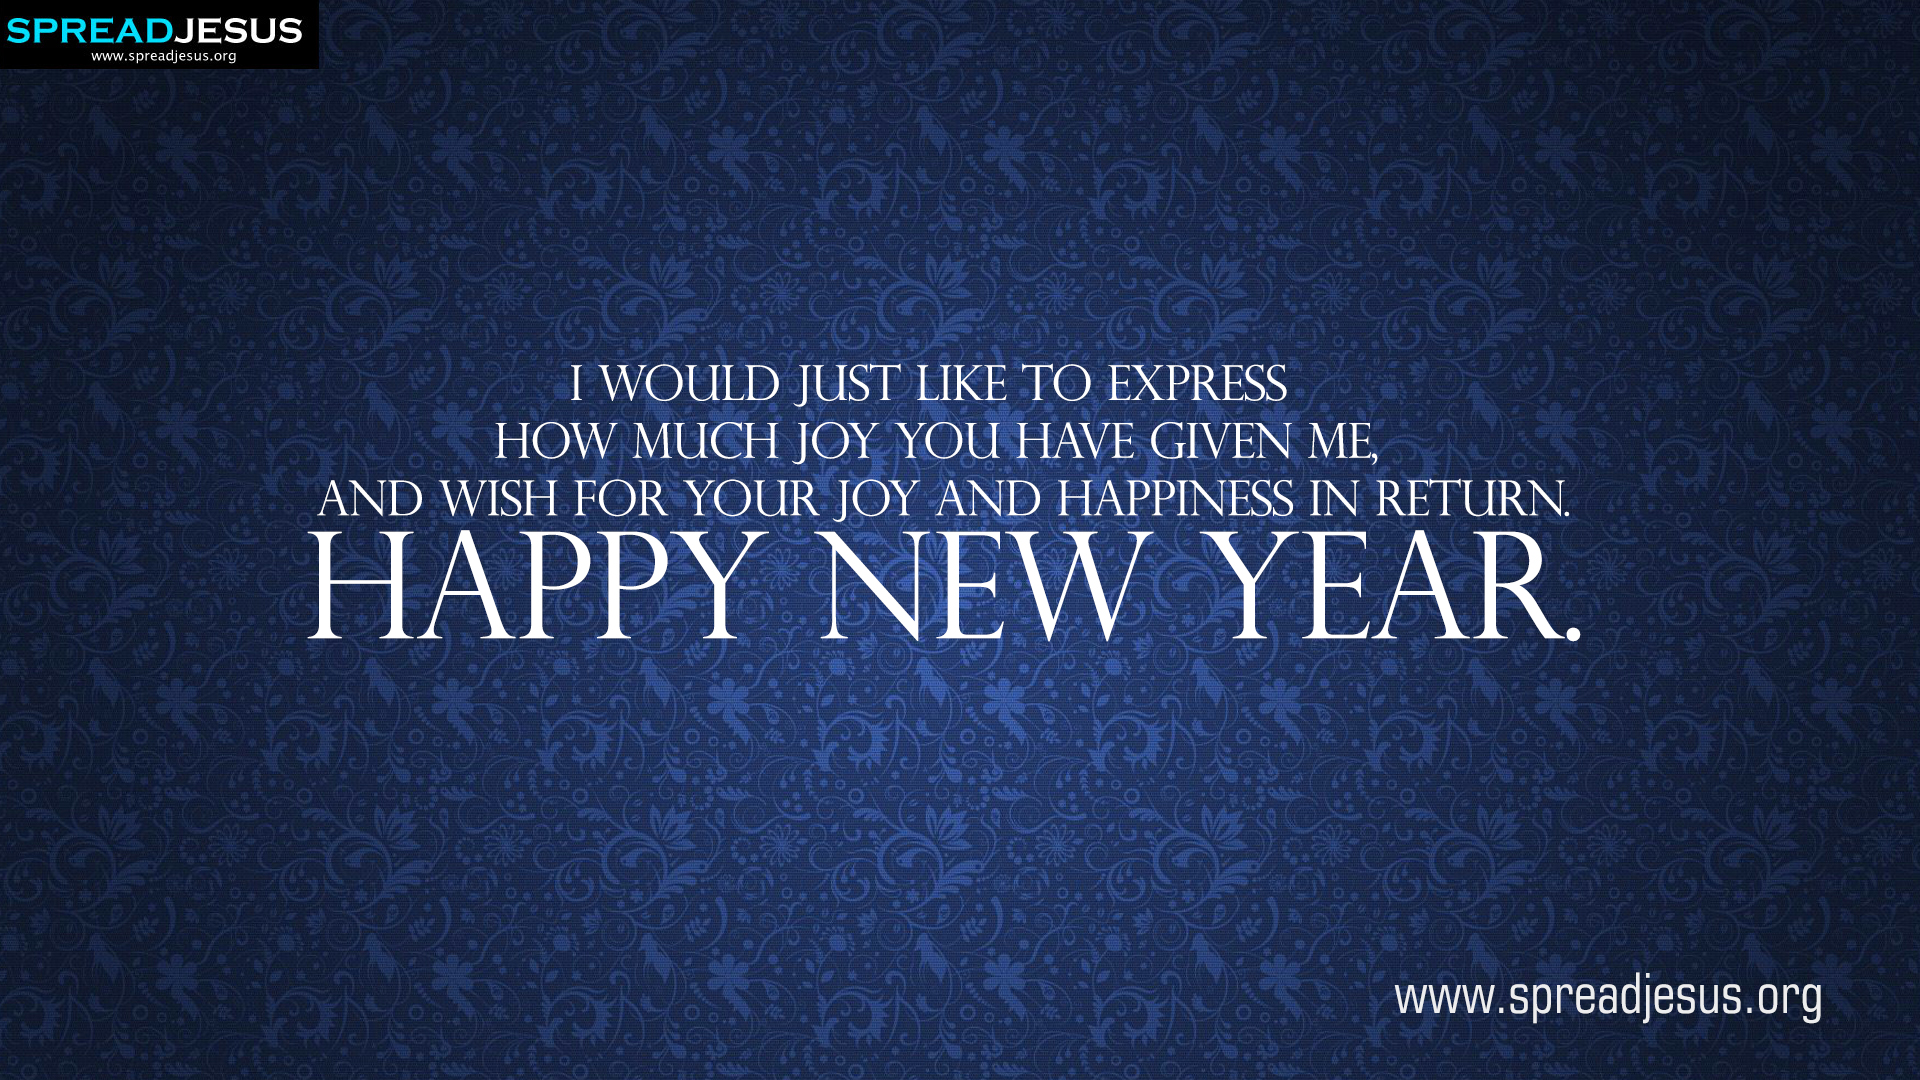 Happy New Year Wallpapers HD New Year HD Wallpapers Download-2,Happy New Year 2017 HD Wallpapers Download